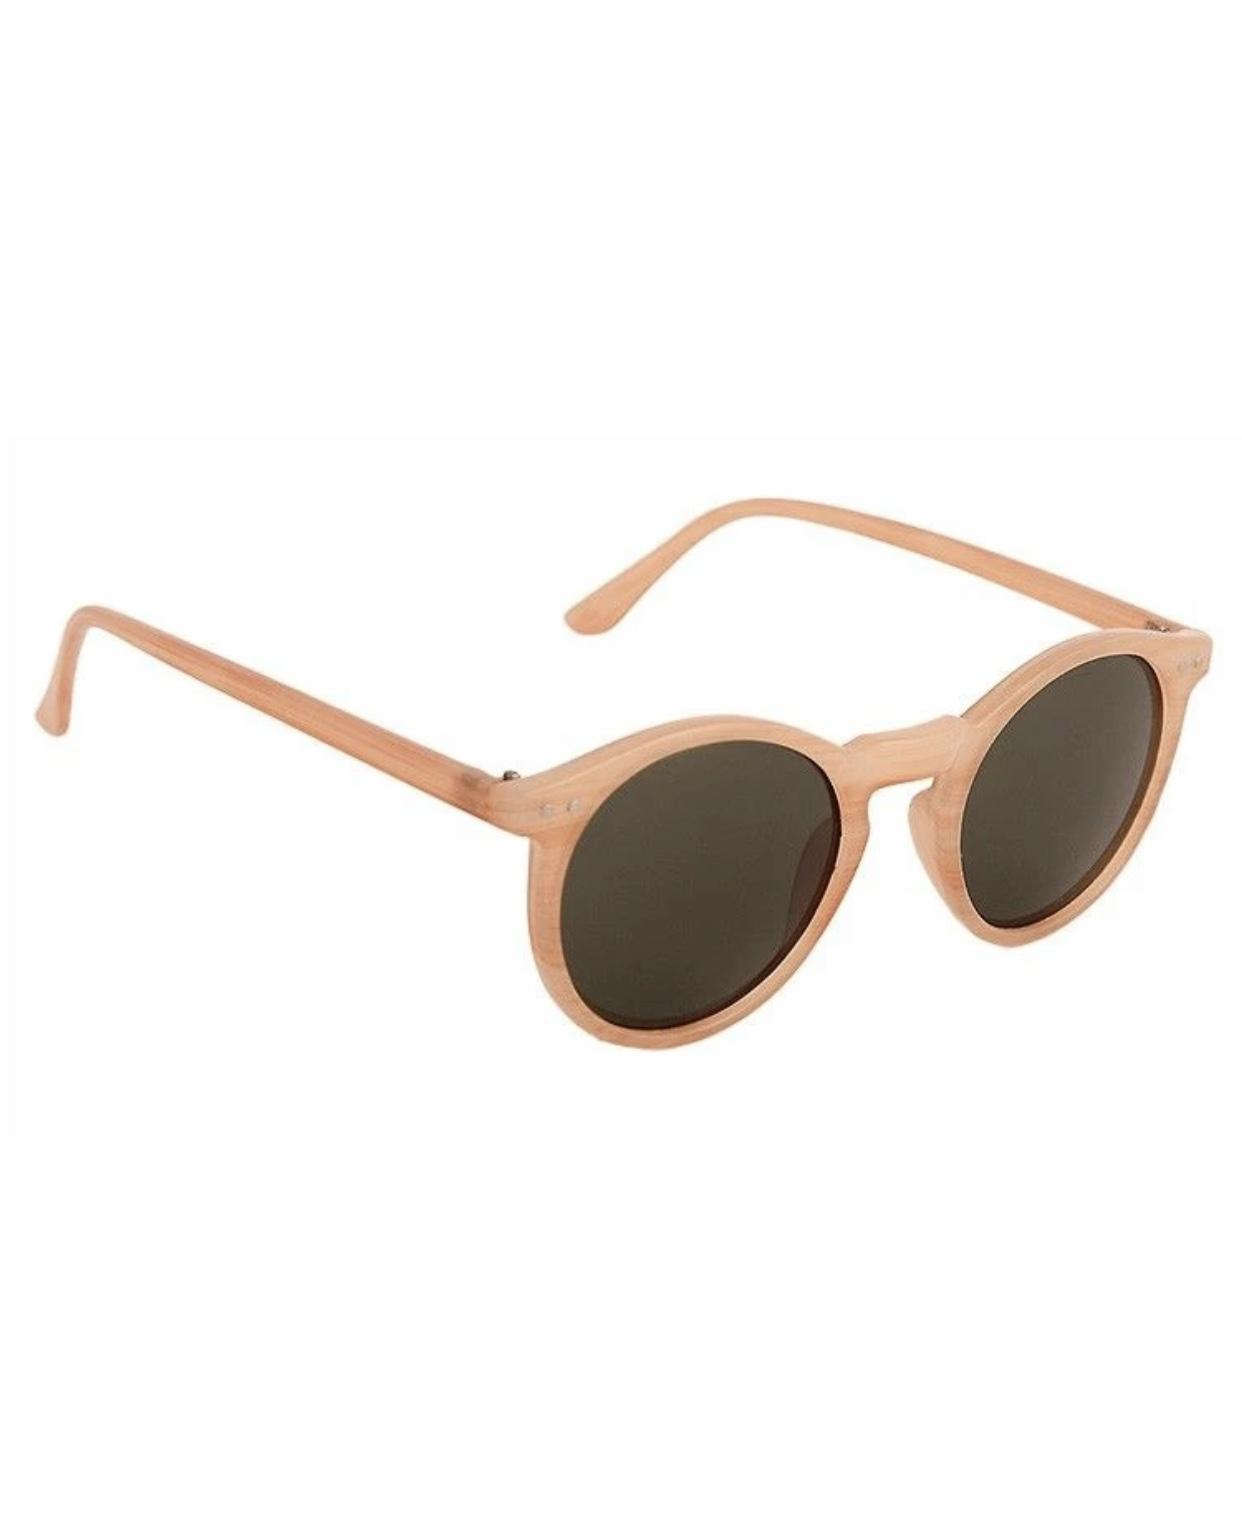 GAFAS DE SOL CHARLY THERAPY MODELO Charles In Town Efecto Madera